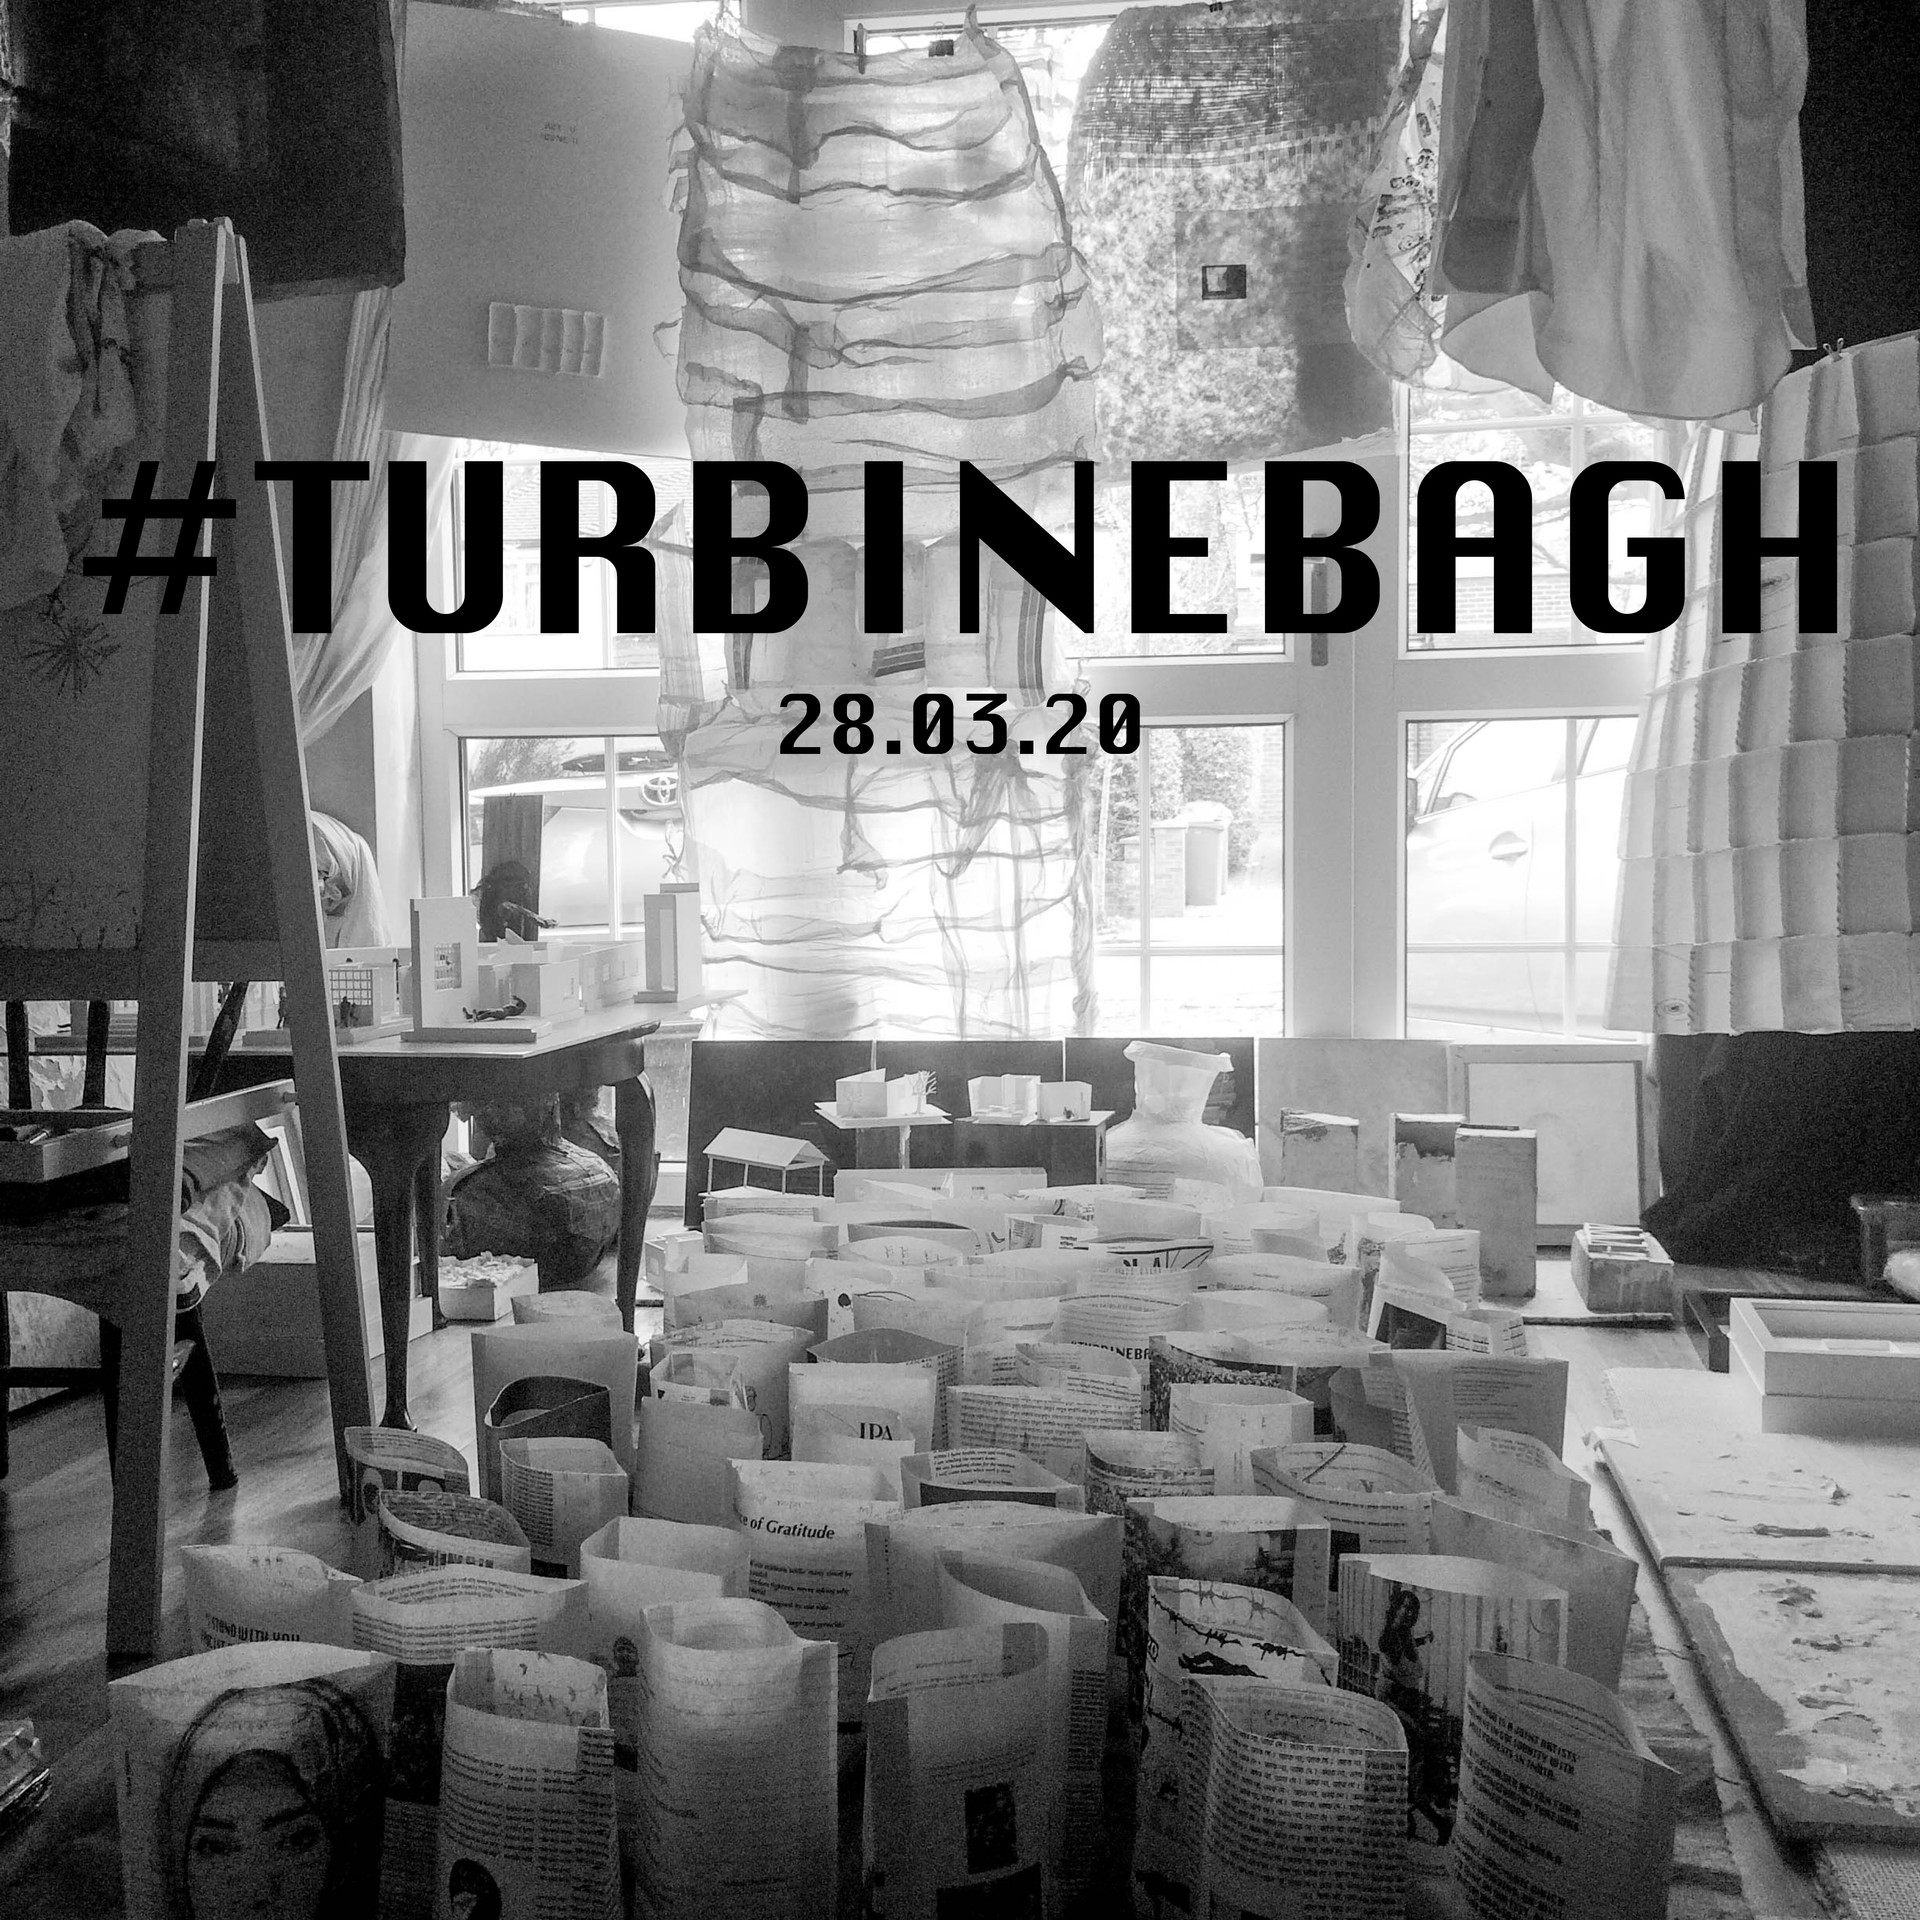 1. Turbine Bagh is a joint artists' movement against fascism and authoritarianism, focusing on India and Bangladesh. It was built around a peaceful protest that was due to be held in the Turbine Hall of Tate Modern museum, London. The event is postponed due to COVOD-19, but the movement continues.